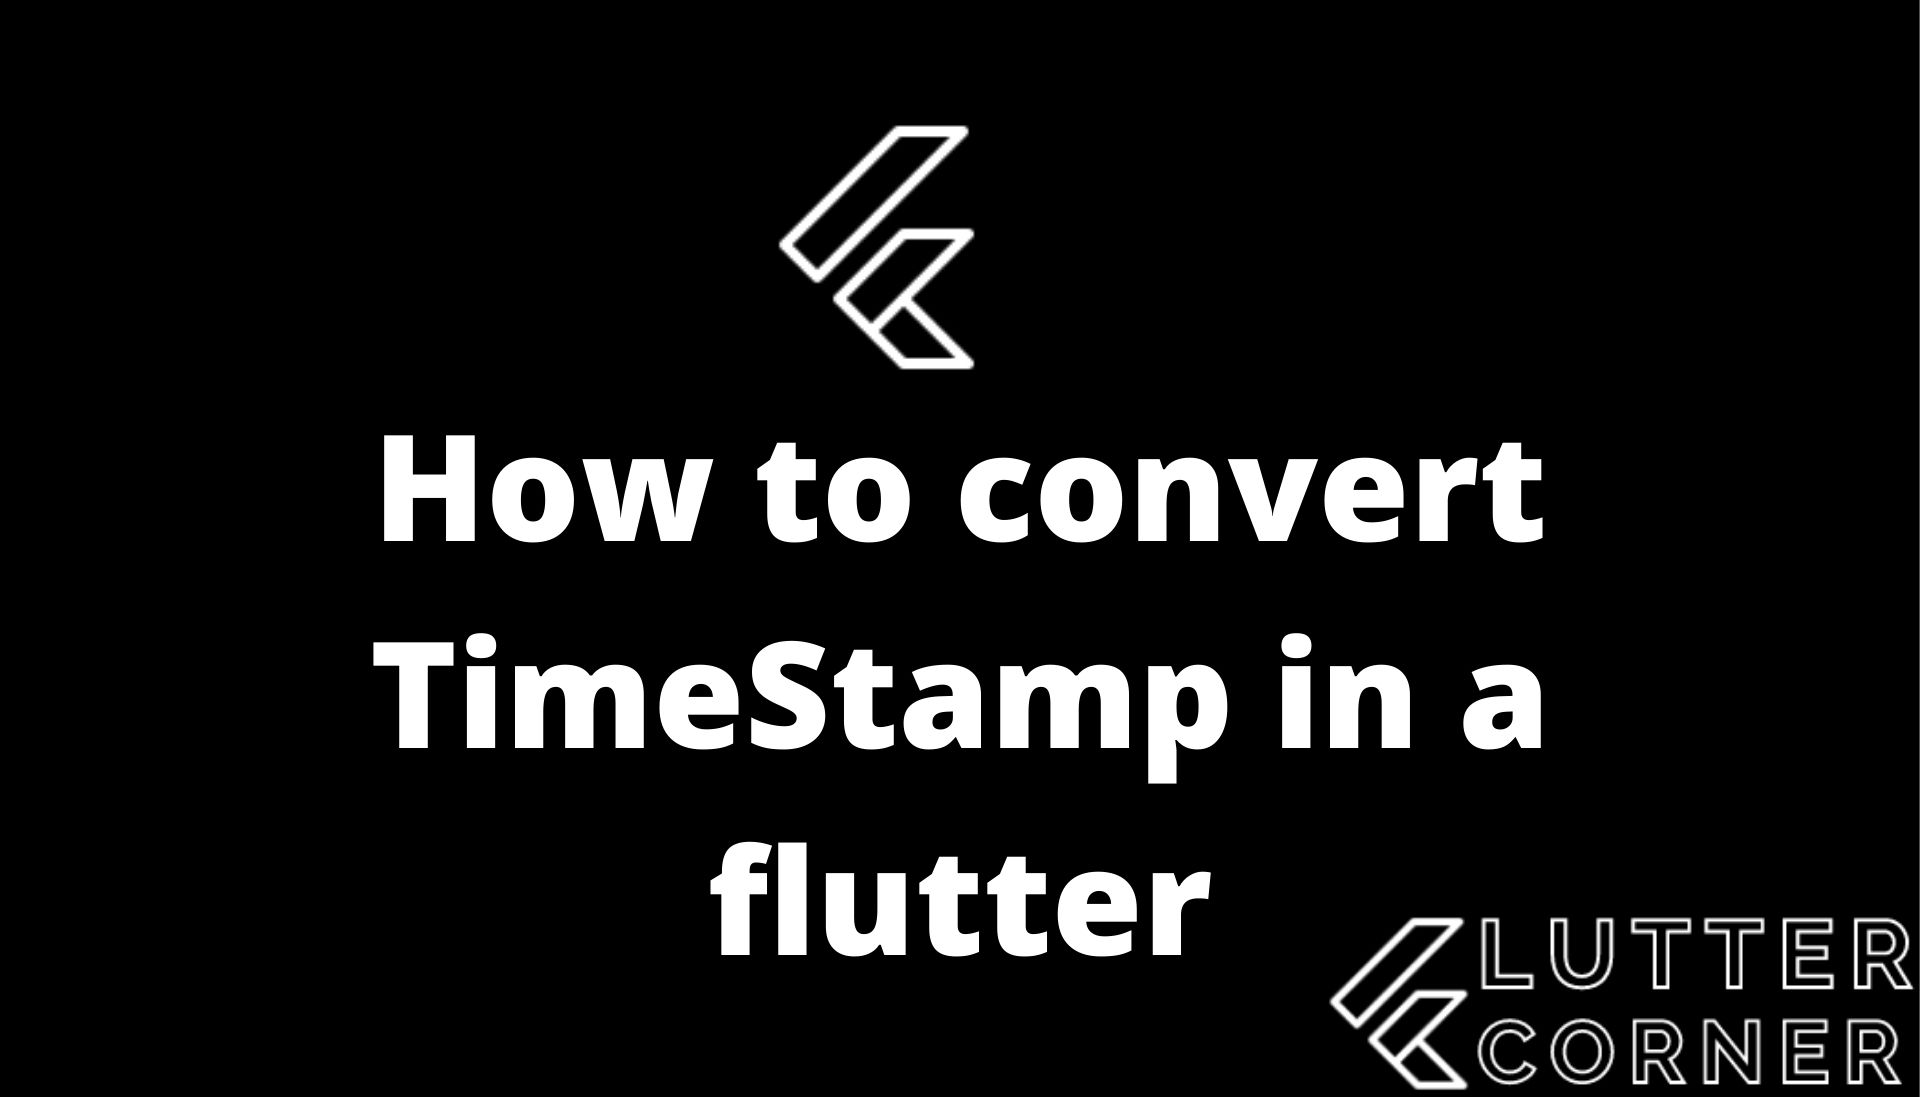 How to convert TimeStamp in a flutter, convert timestamp in a flutter, timestamp in a flutter, convert timestamp